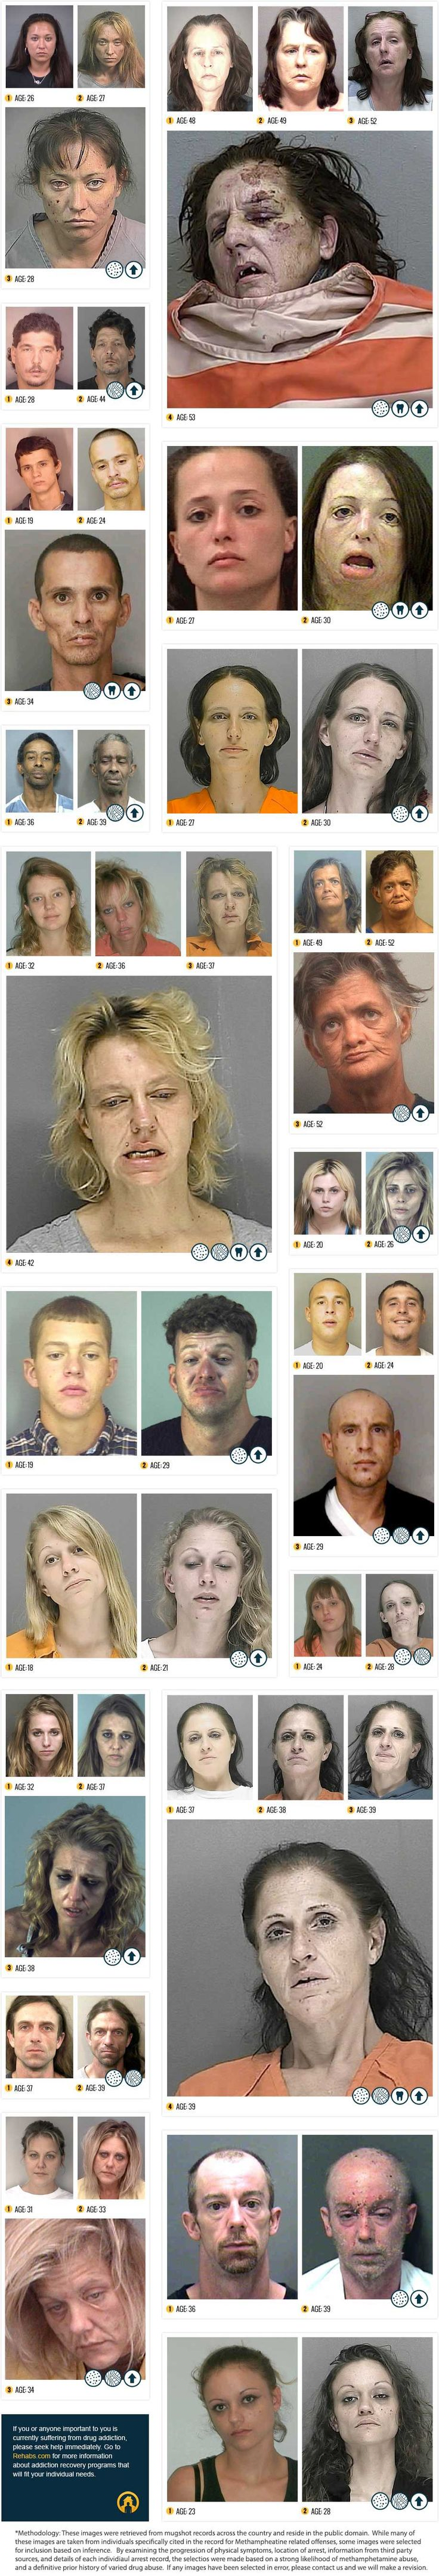 Before & After Drugs: A Real Life Infographic Depicting the Destructive Power of Meth